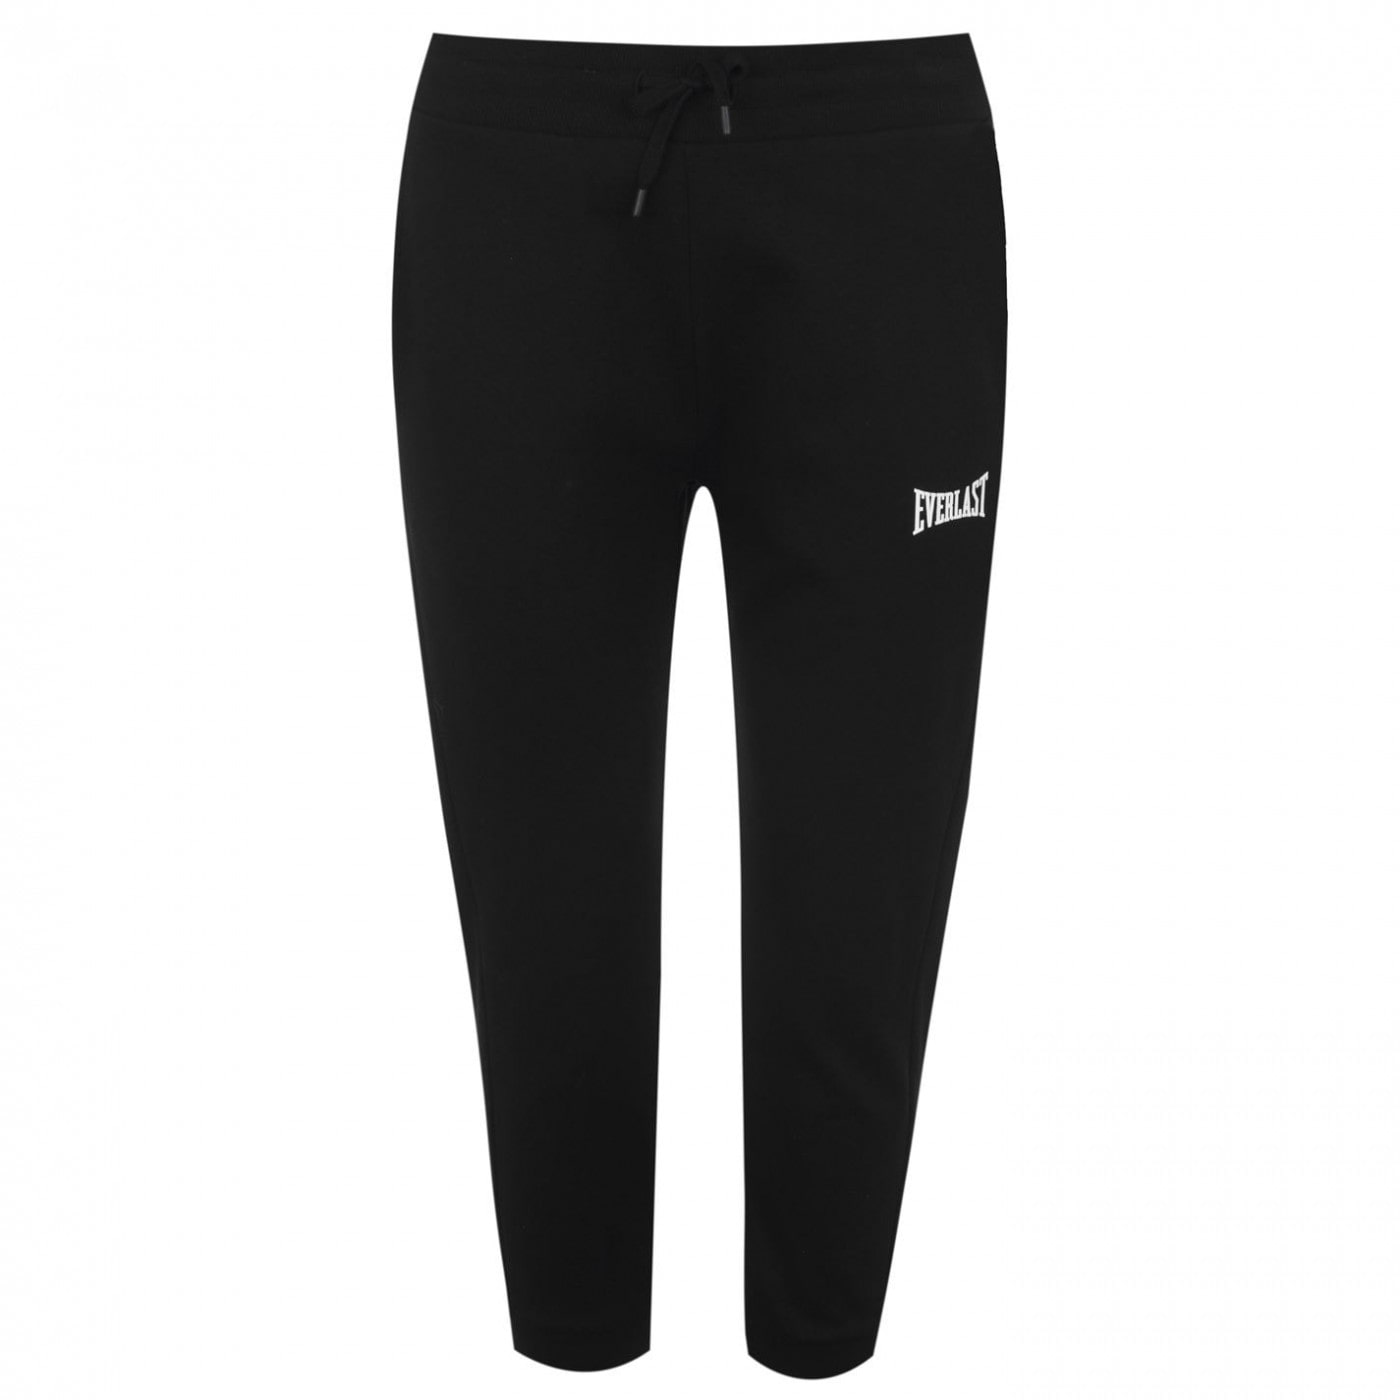 Everlast three quarter Jogging Pants Ladies